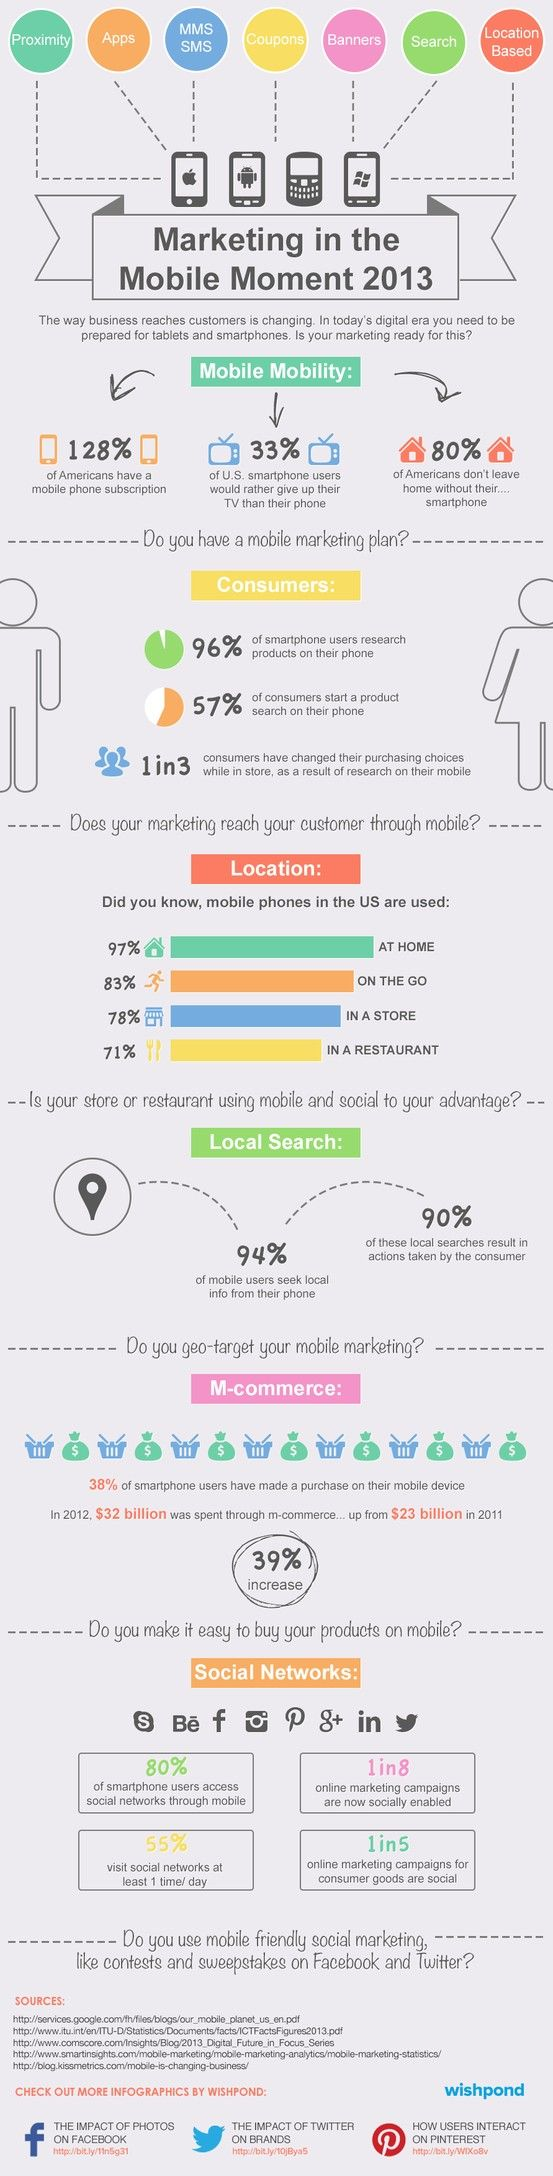 Do u make it easy to buy your products on mobile?#infographics #Marketing in mobile moment 2013